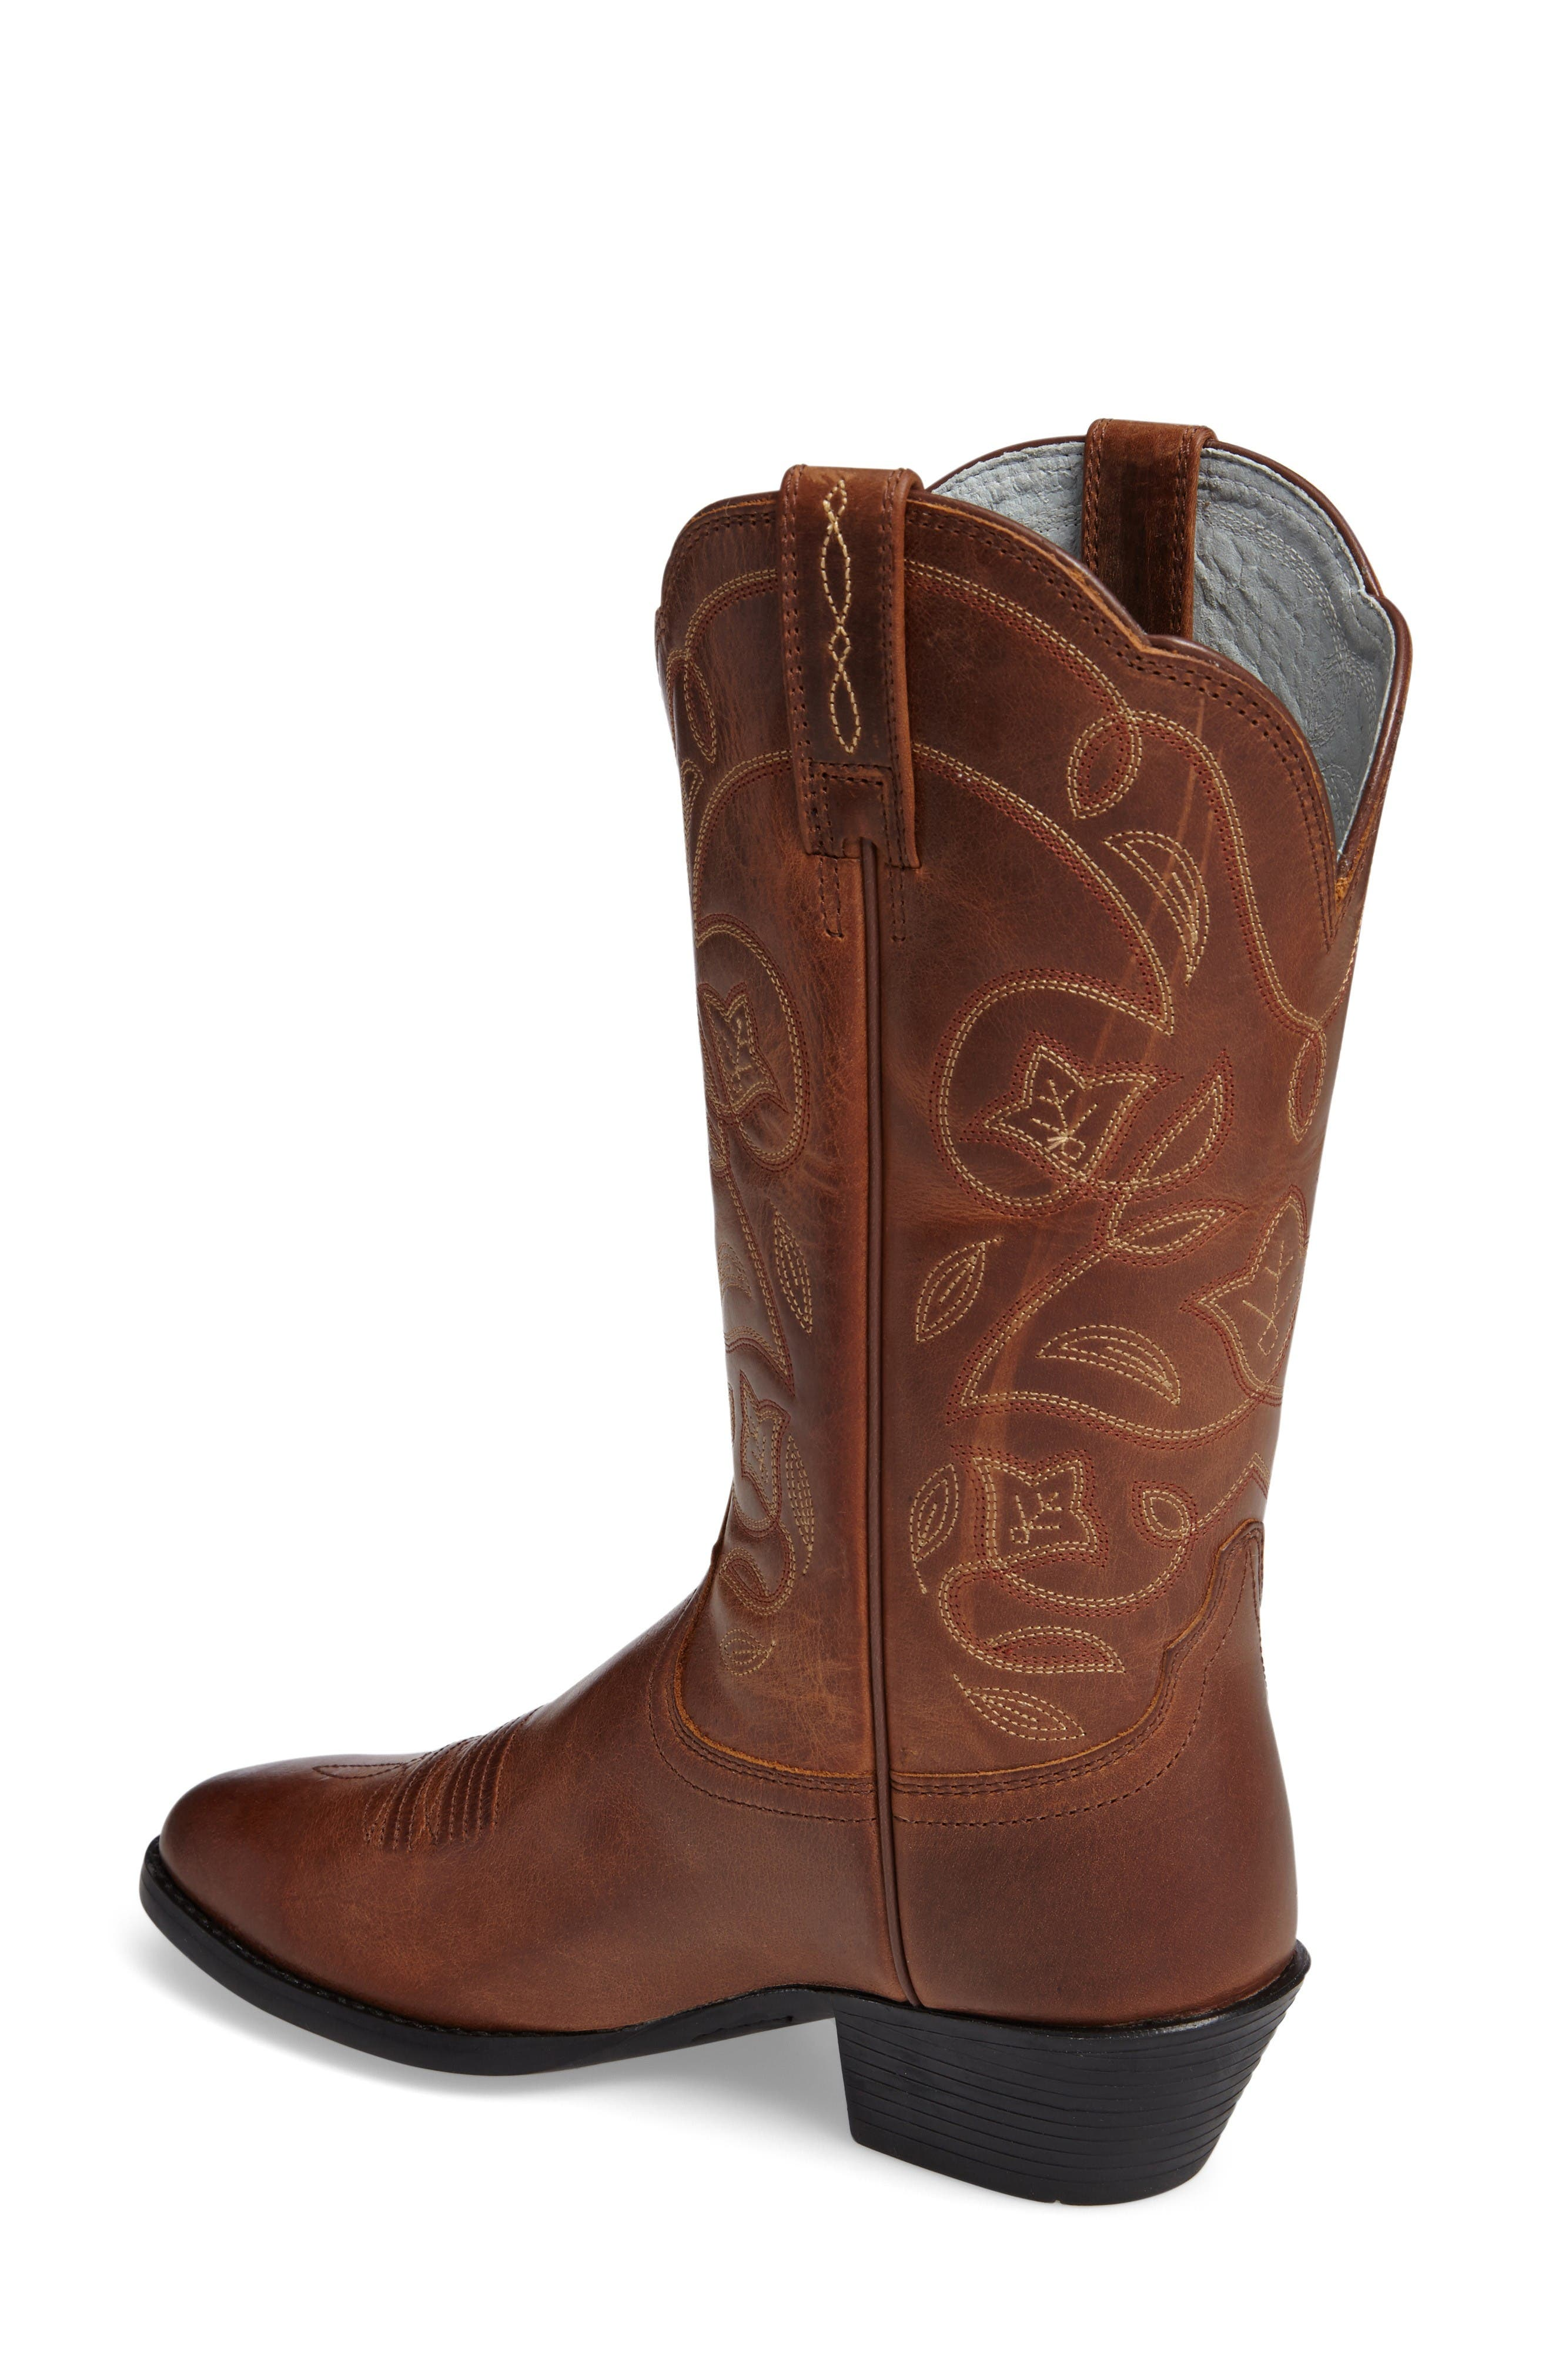 38a620c0dab Women's Ariat Boots | Nordstrom